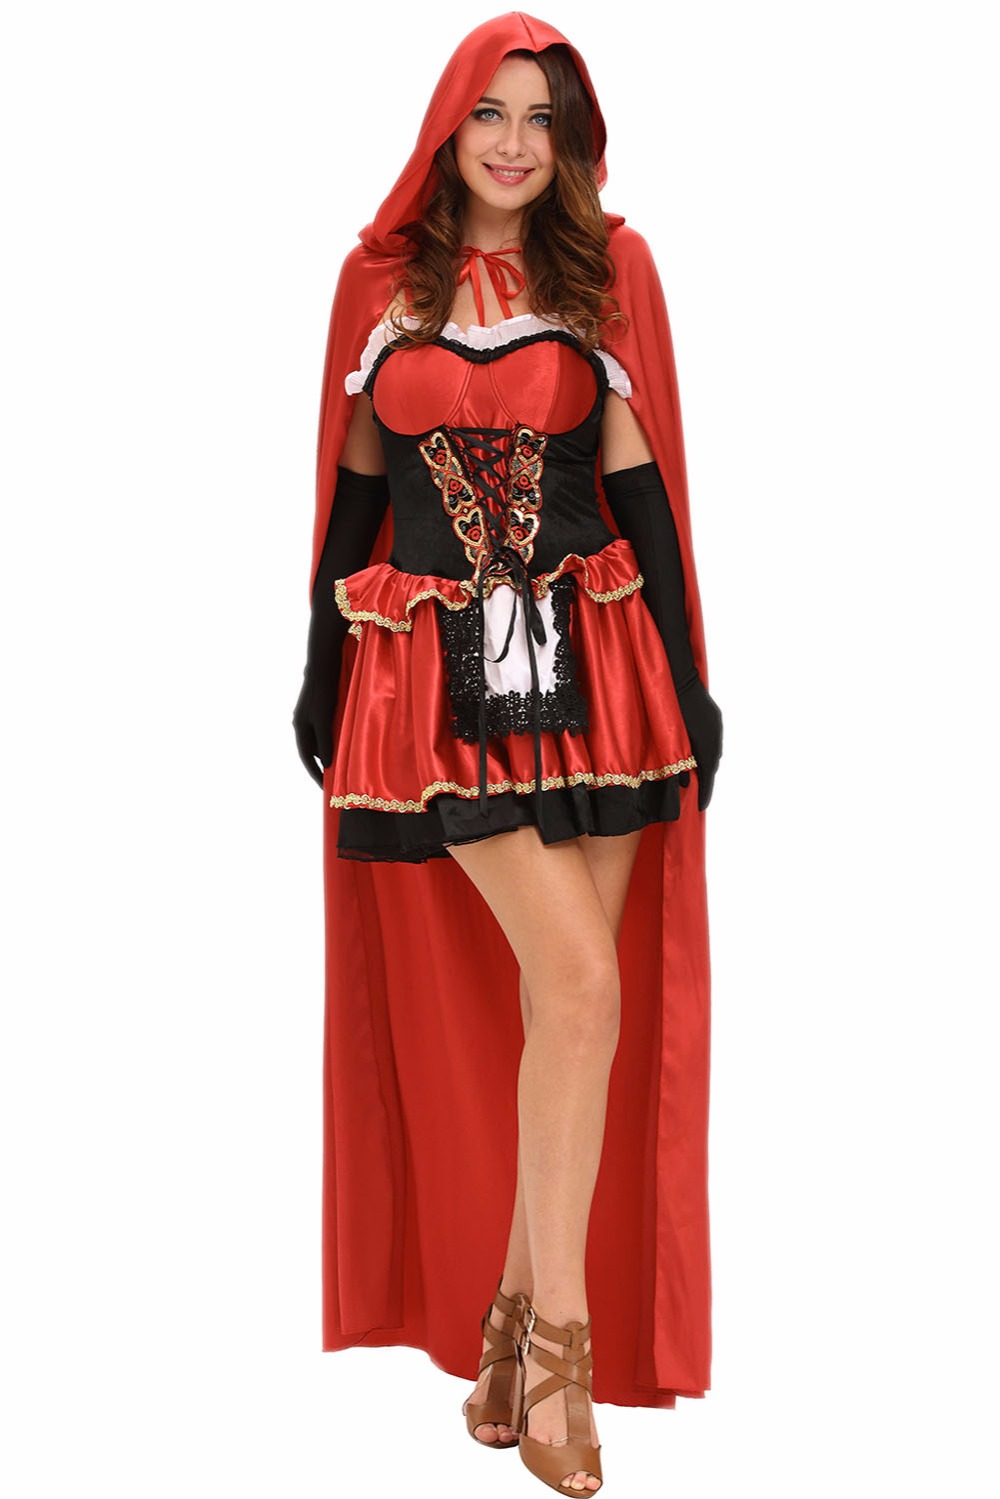 new 2016 party adult costumes funny naughty fantasia three piece fairy tale little red costume halloween cosplay lc8992 - Halloween Naughty Costumes